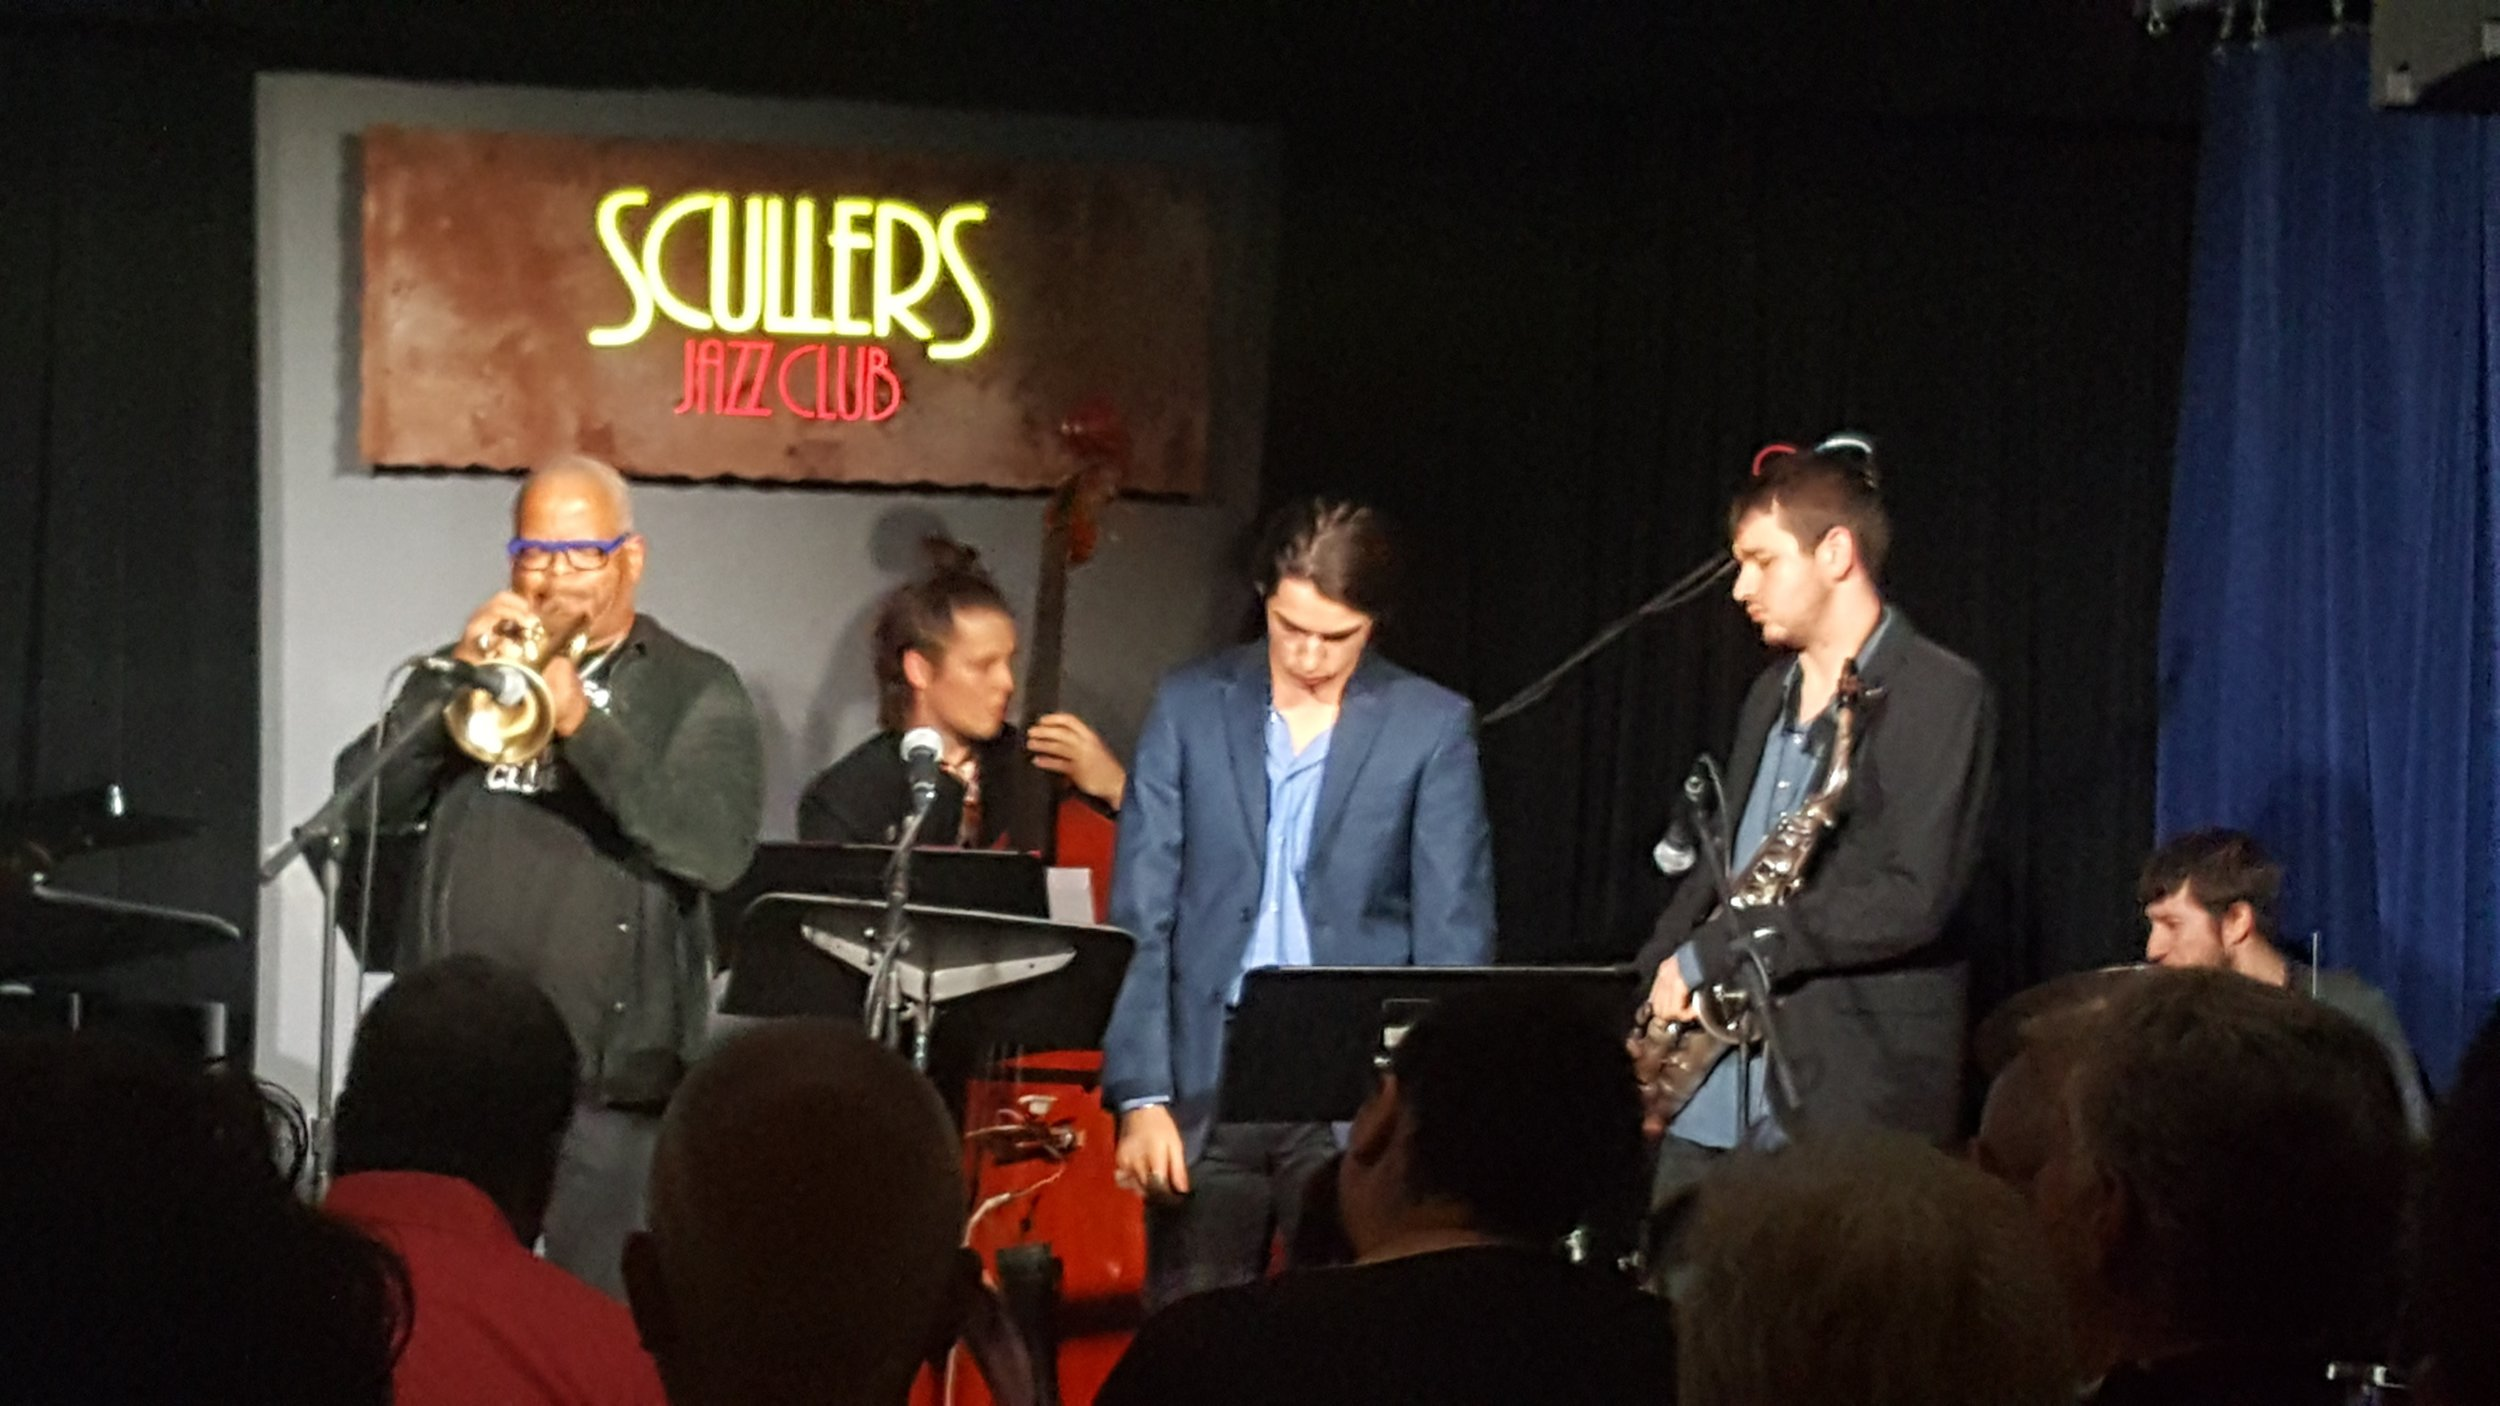 With Terence Blanchard at Scullers